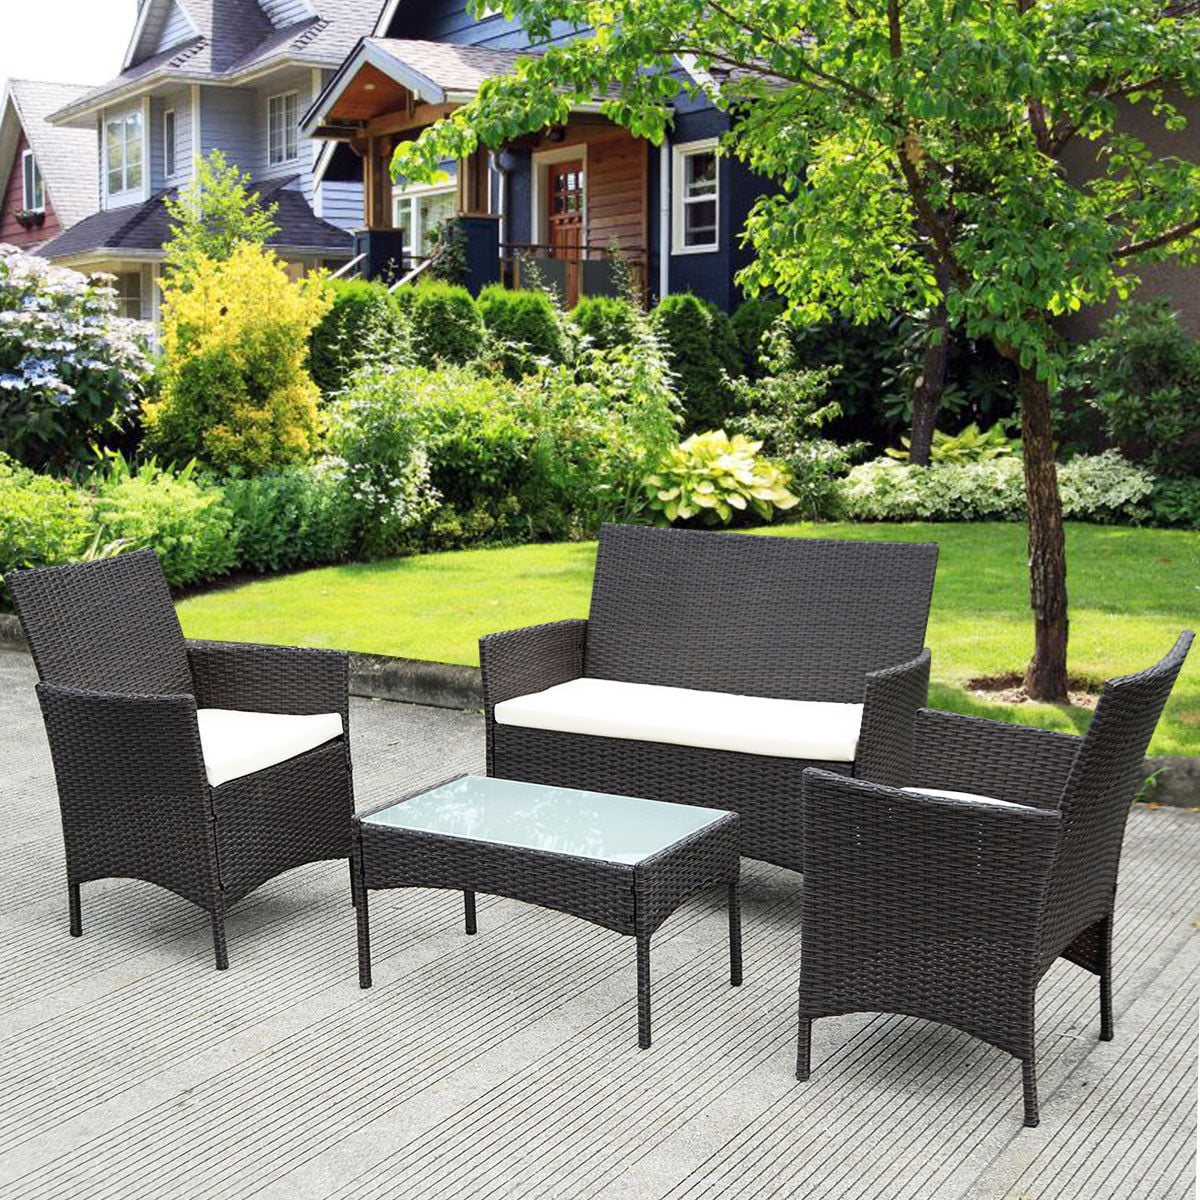 brown set patio source outdoor. Costway 4 PC Patio Rattan Wicker Chair Sofa Table Set Outdoor Garden Furniture Cushioned - Walmart.com Brown Source T